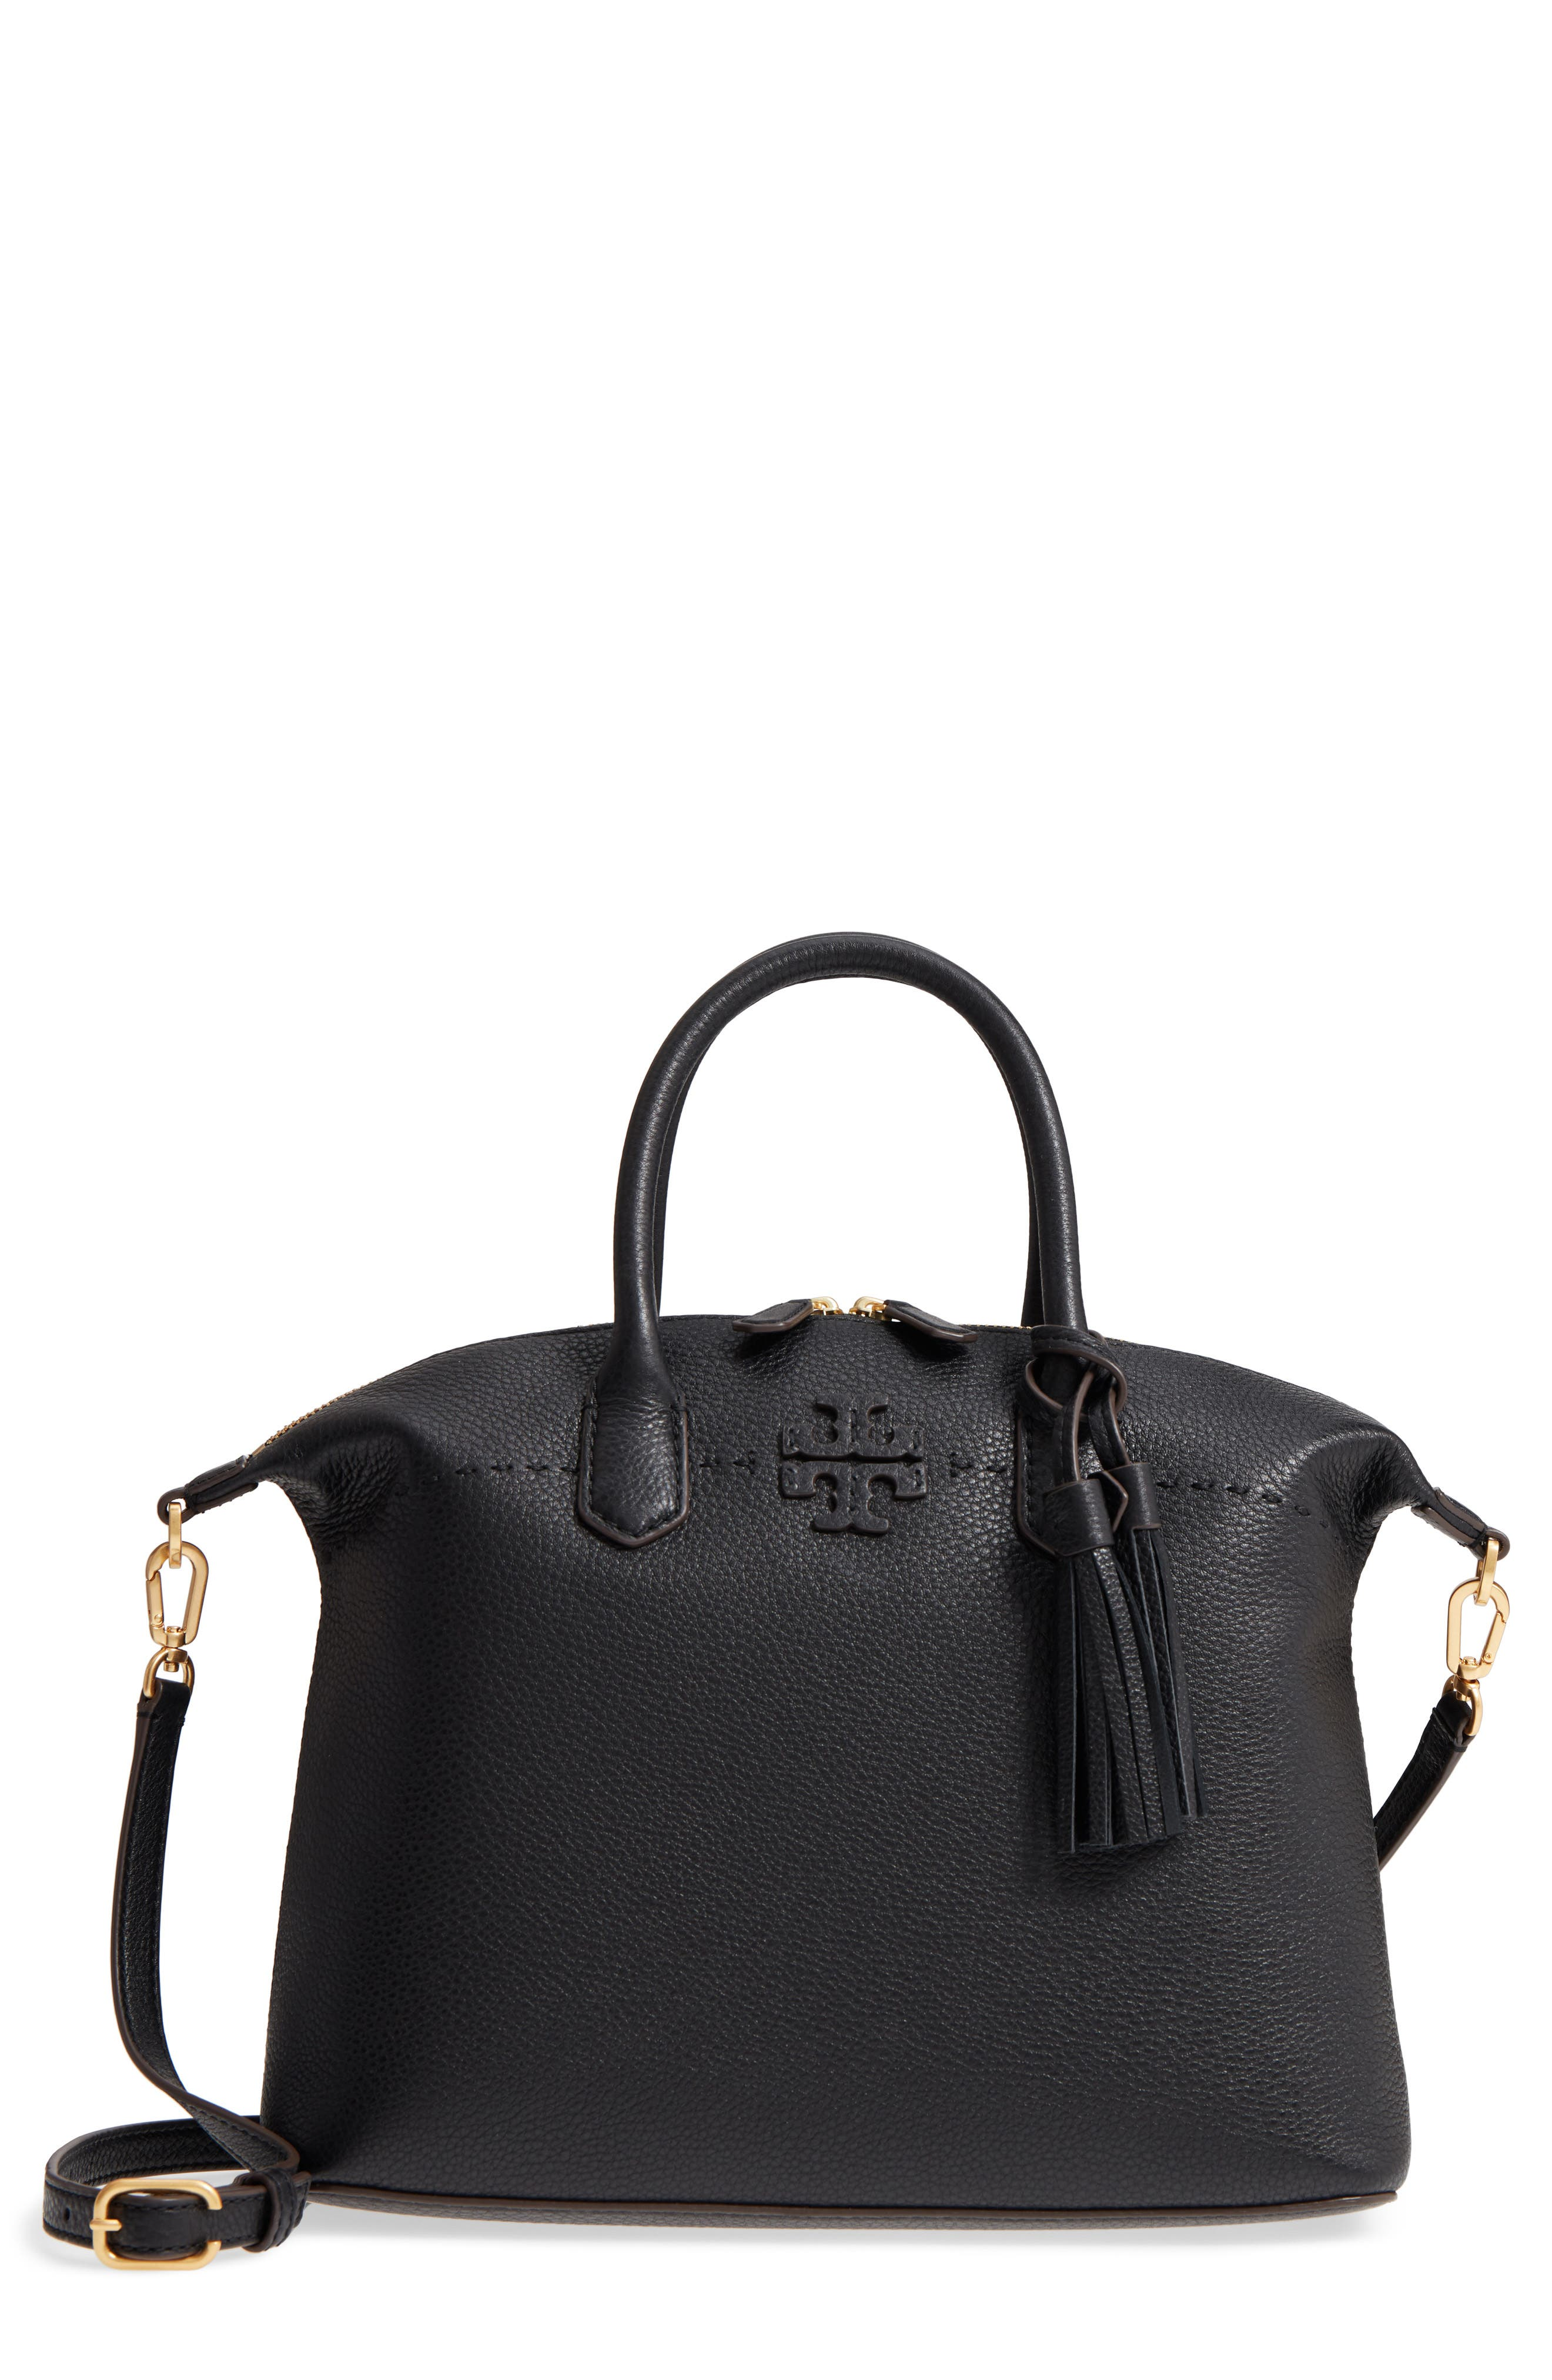 TORY BURCH McGraw Slouchy Leather Satchel, Main, color, BLACK